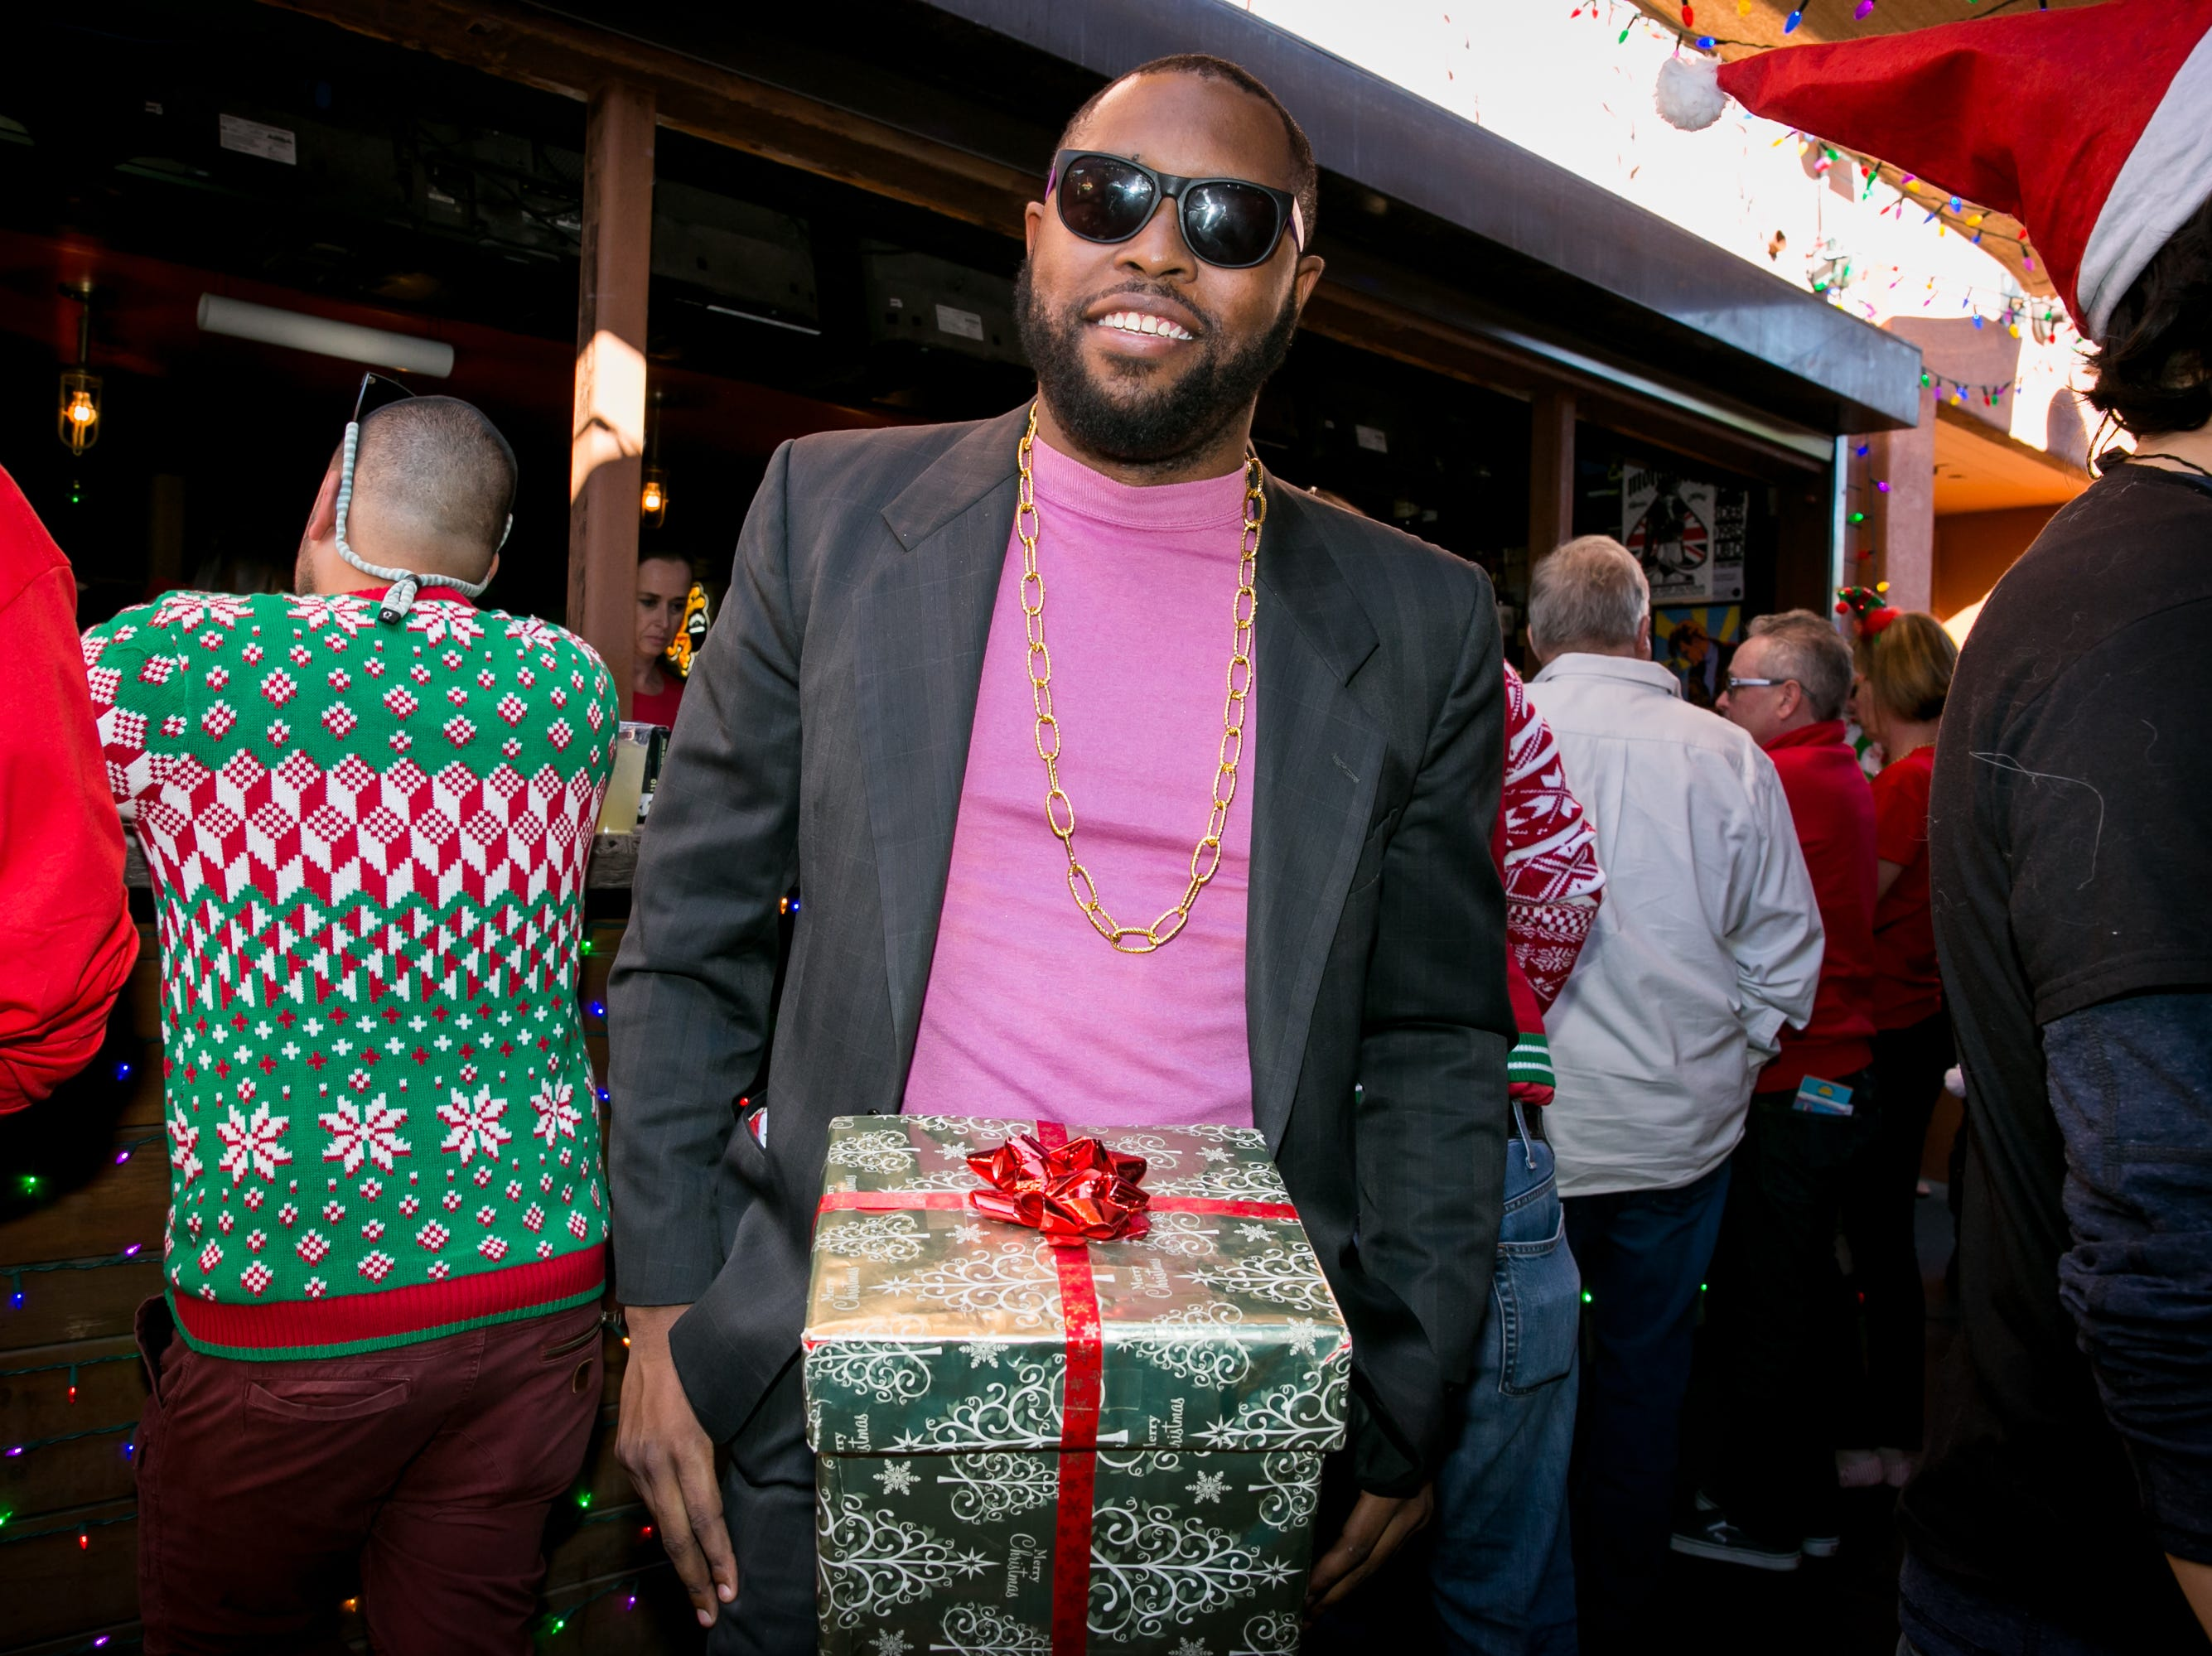 This outfit was a great nod to a favorite SNL skit during the Scottsdale Santa Crawl at Old Town Gringos on Saturday, December 8, 2018.